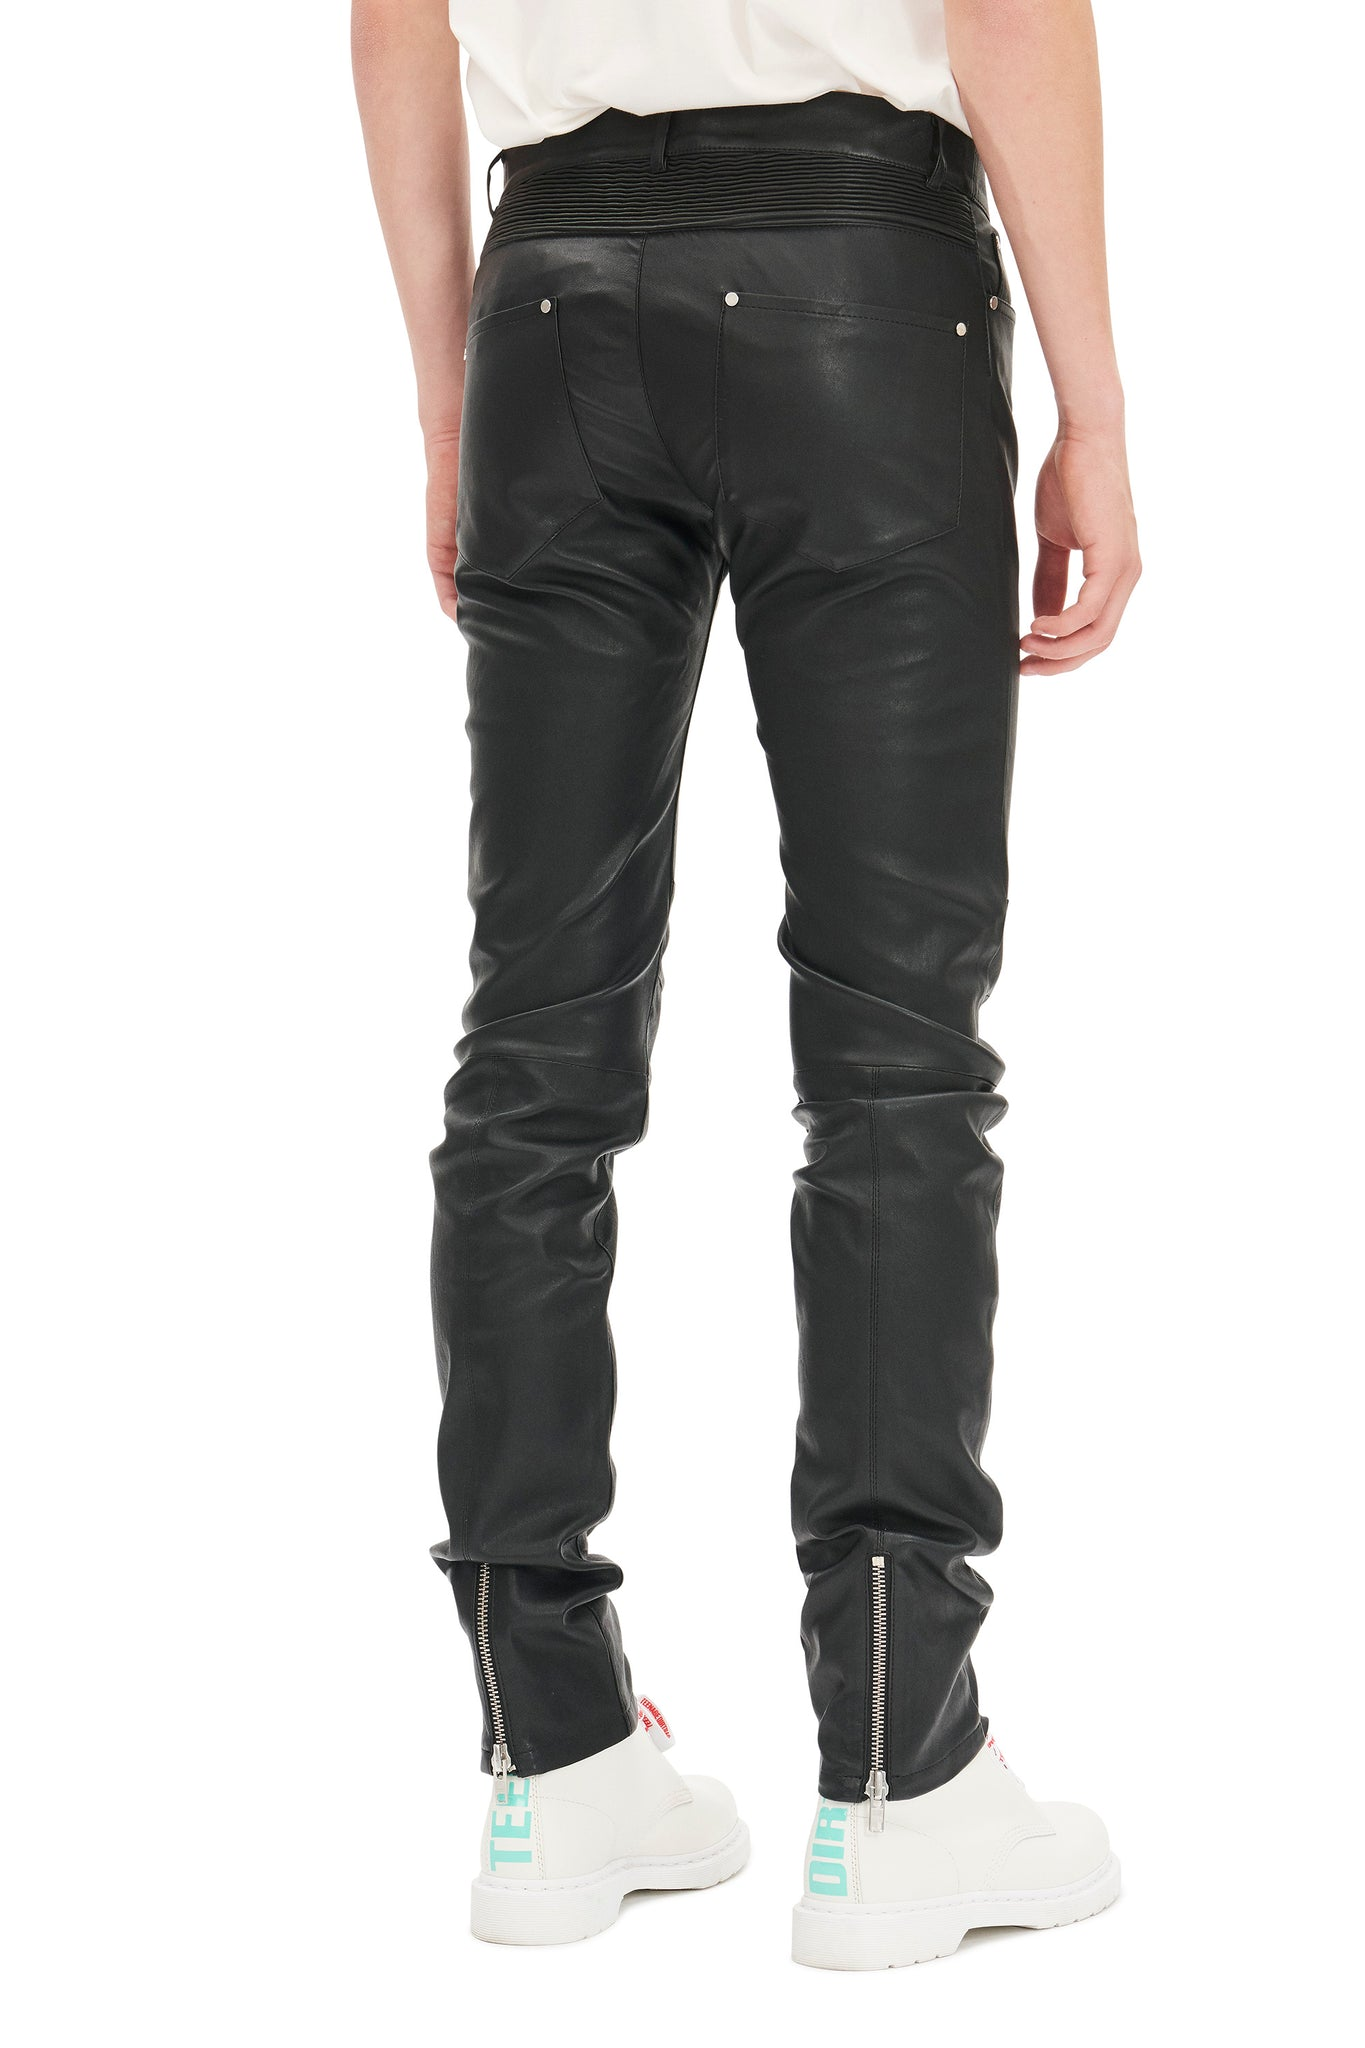 martin asbjørn slim-fit leather jeans classic collection menswear